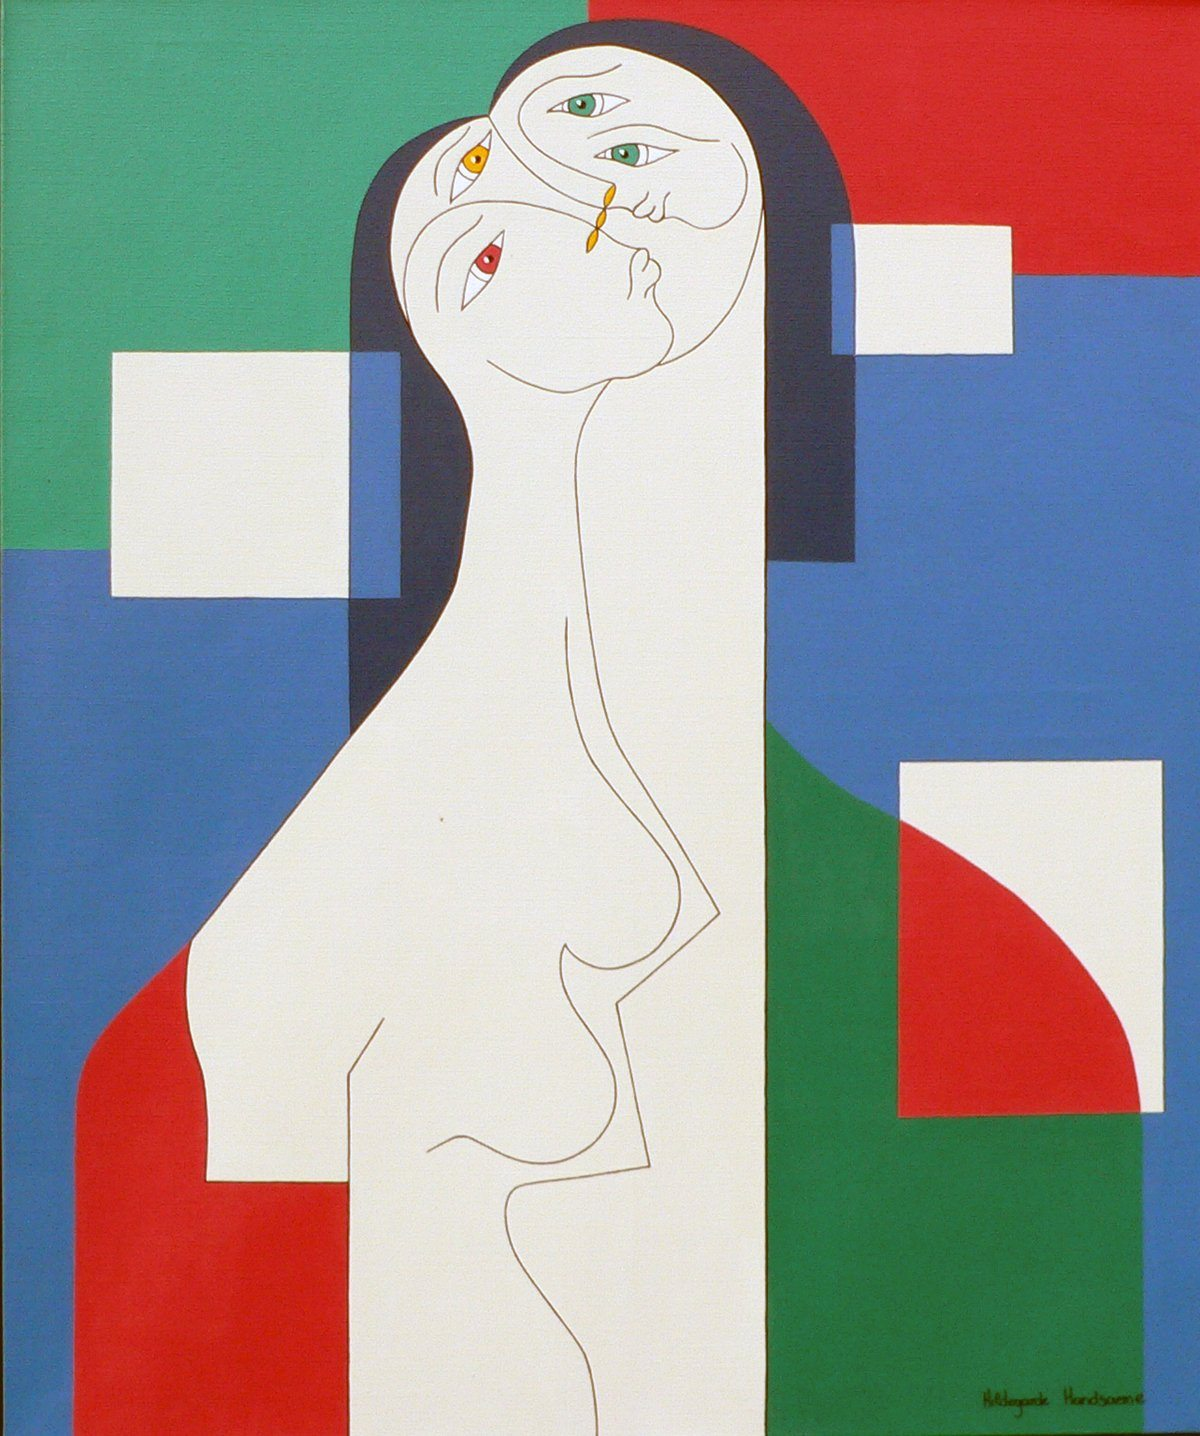 Trio by Hildegarde Handsaeme, Trio - Art Acacia Gallery & Advisory